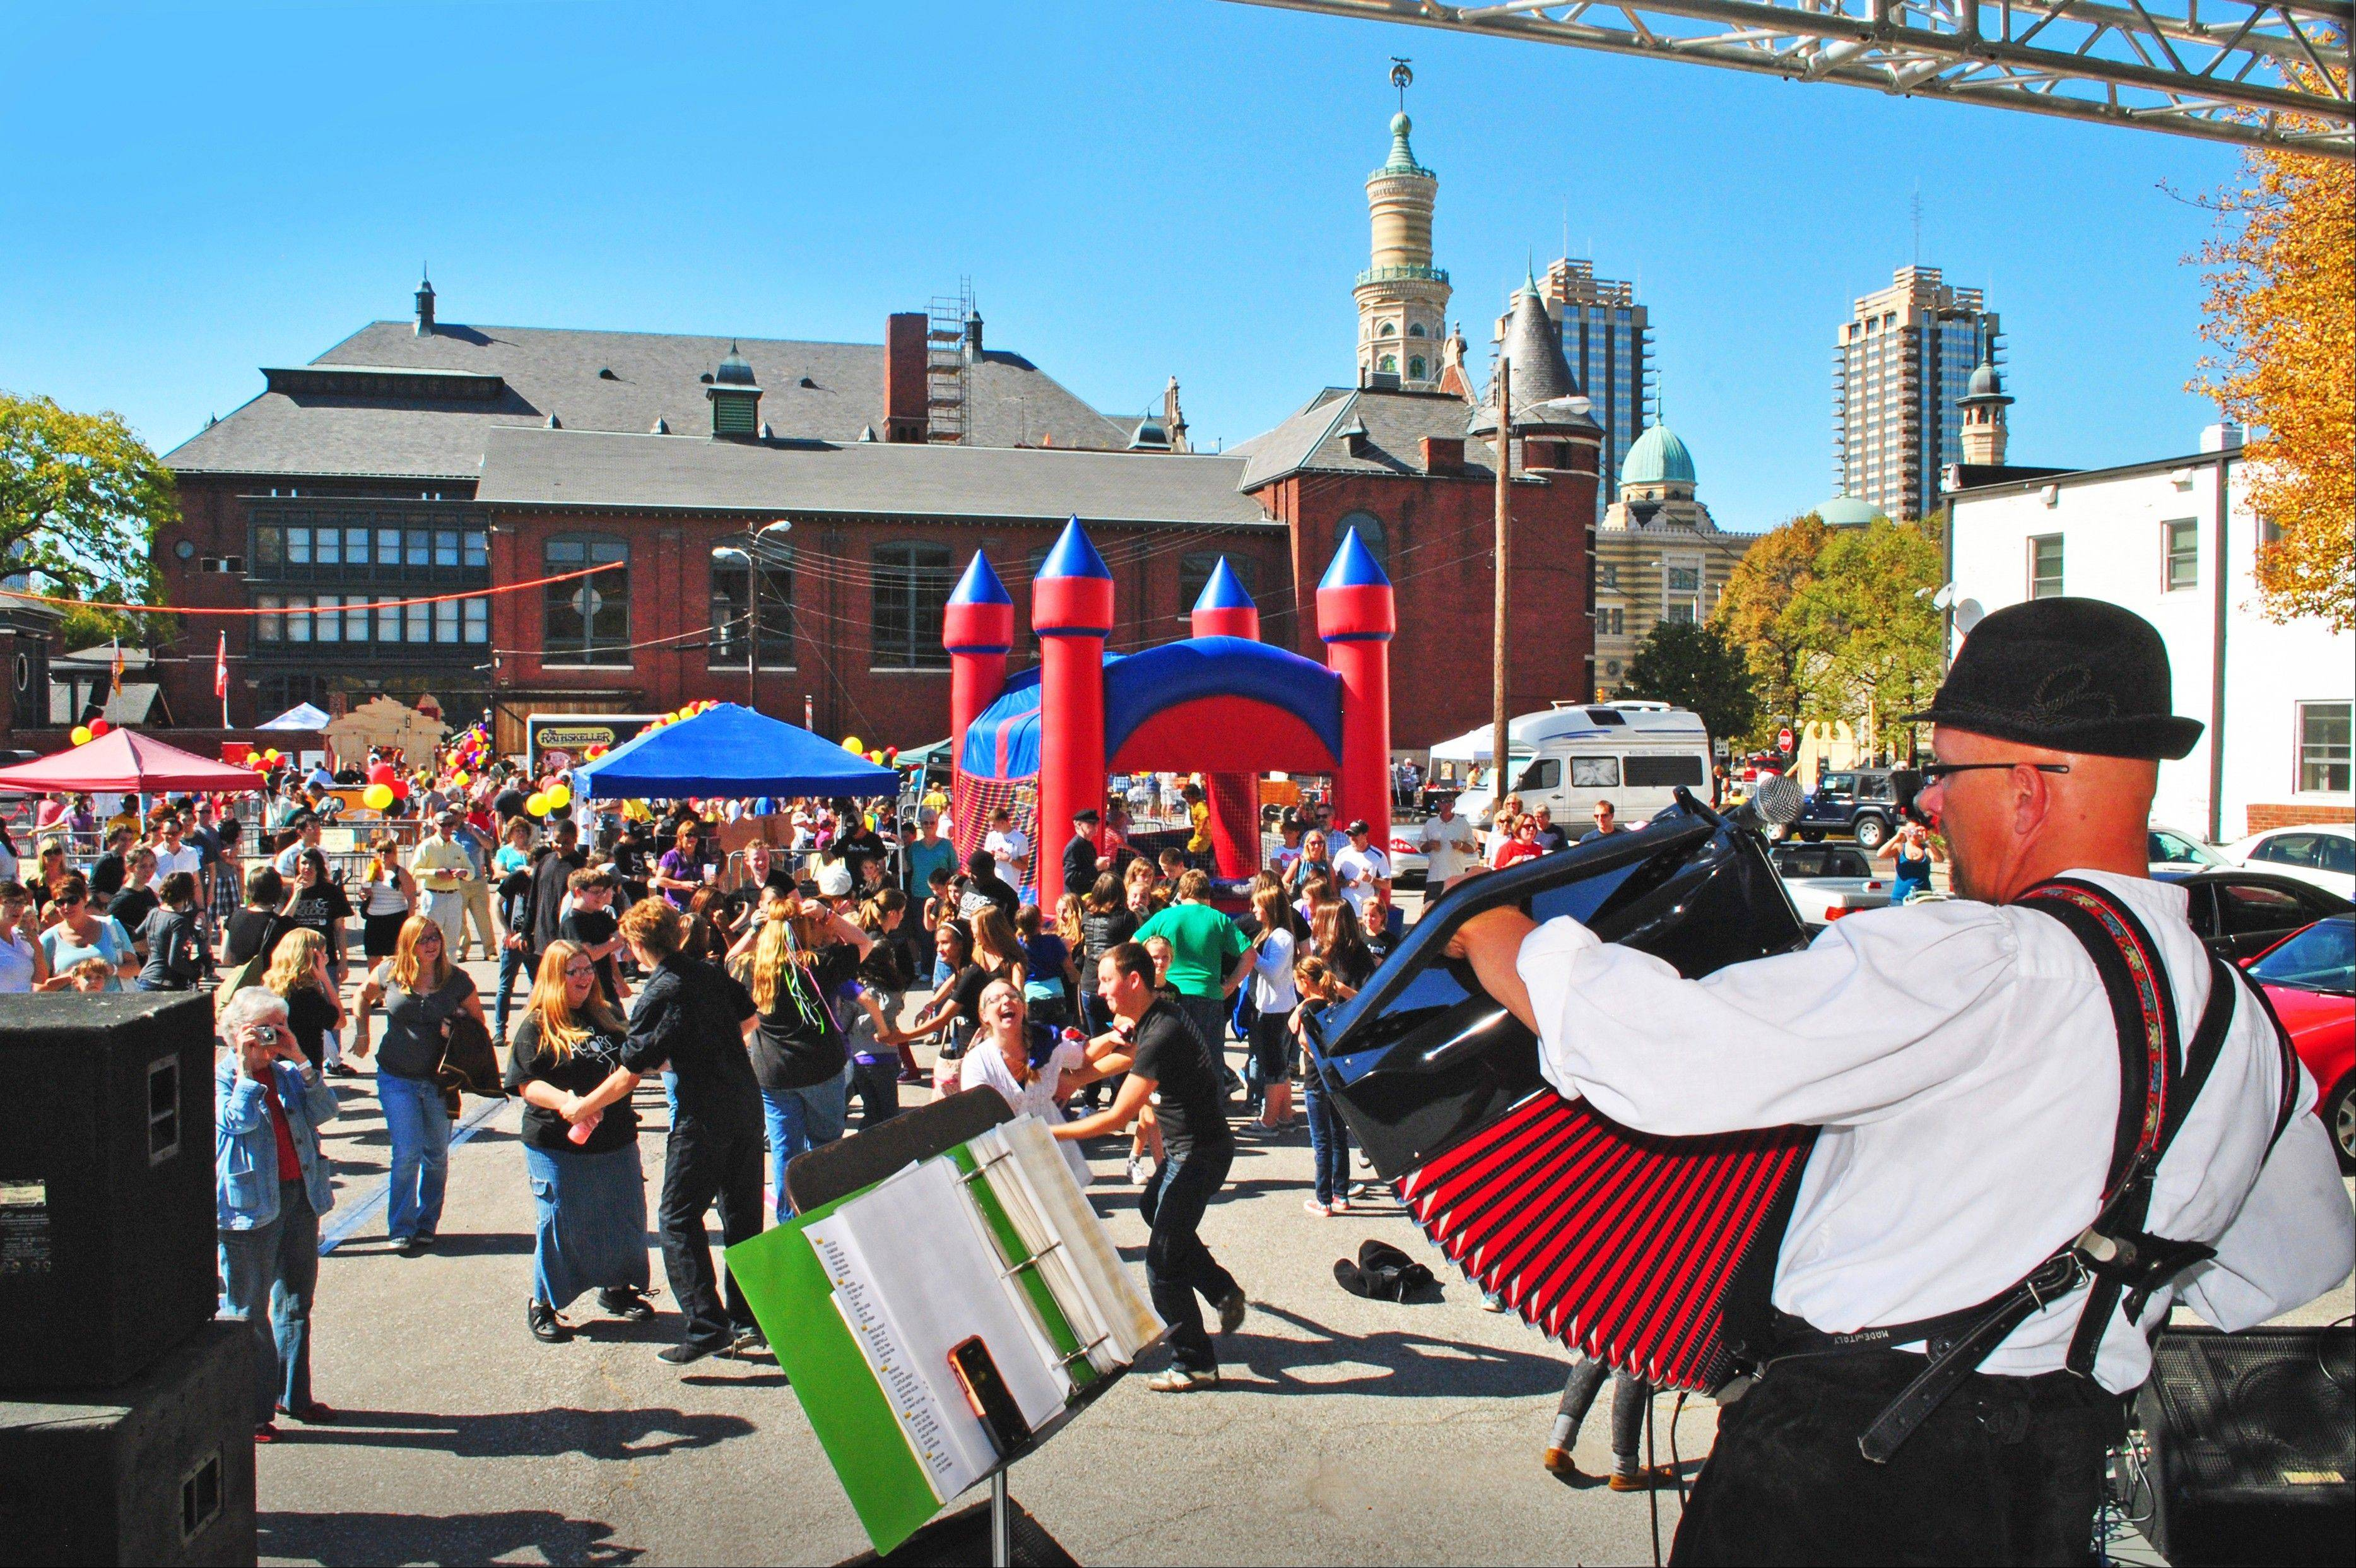 Germanfest brings the sights, scents and tastes of the old country to Indianapolis.